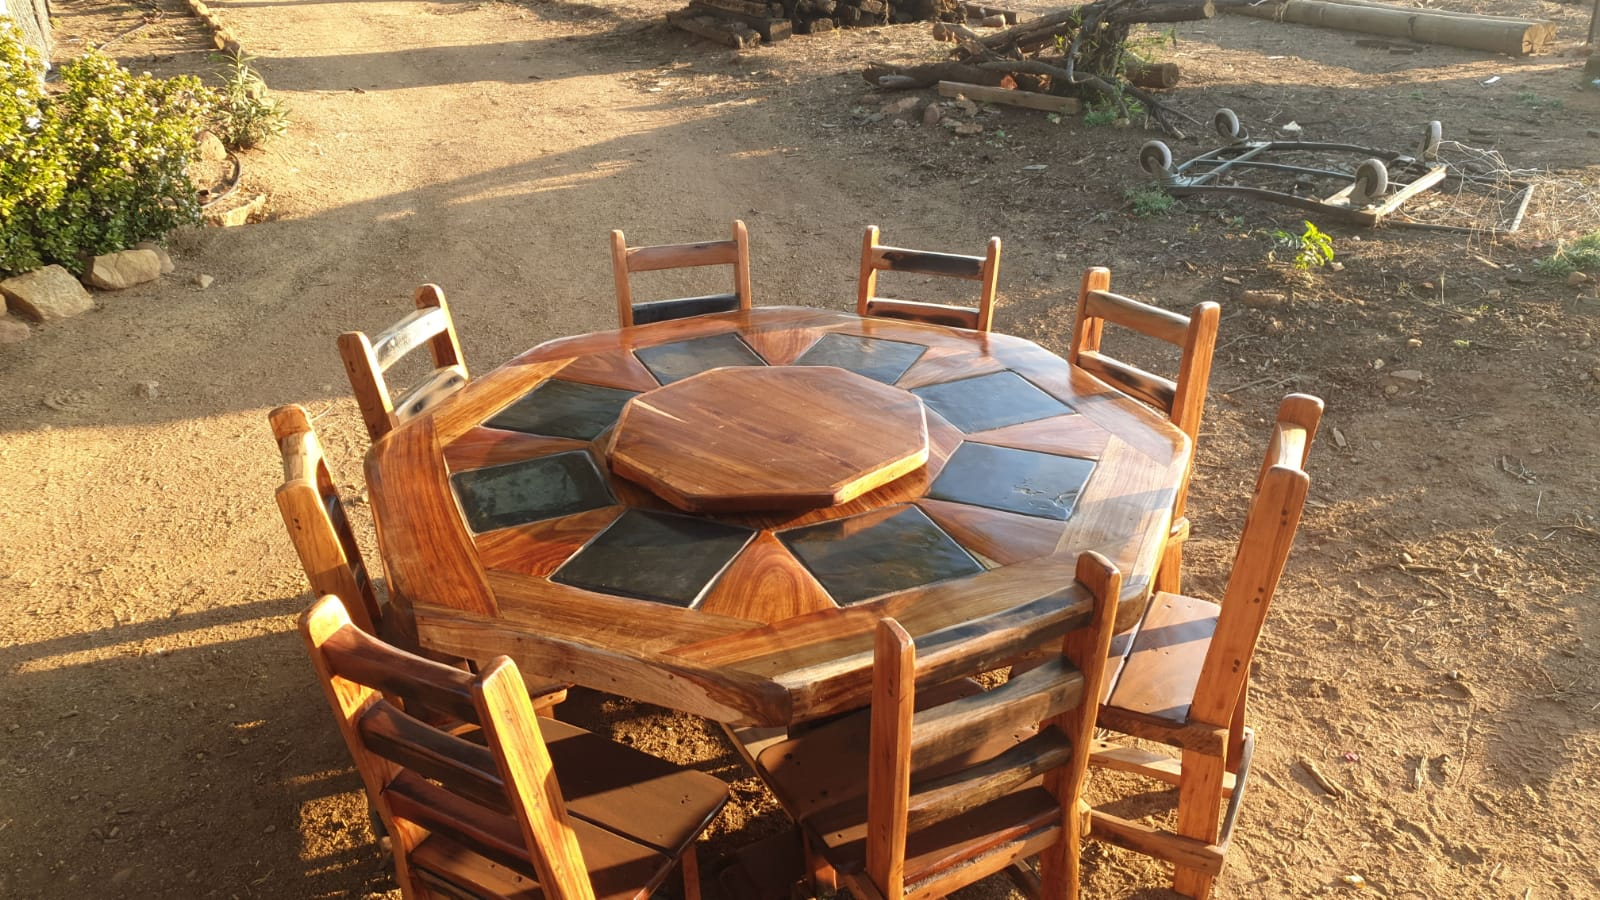 8seater diningroom furniture (2 different shapes)